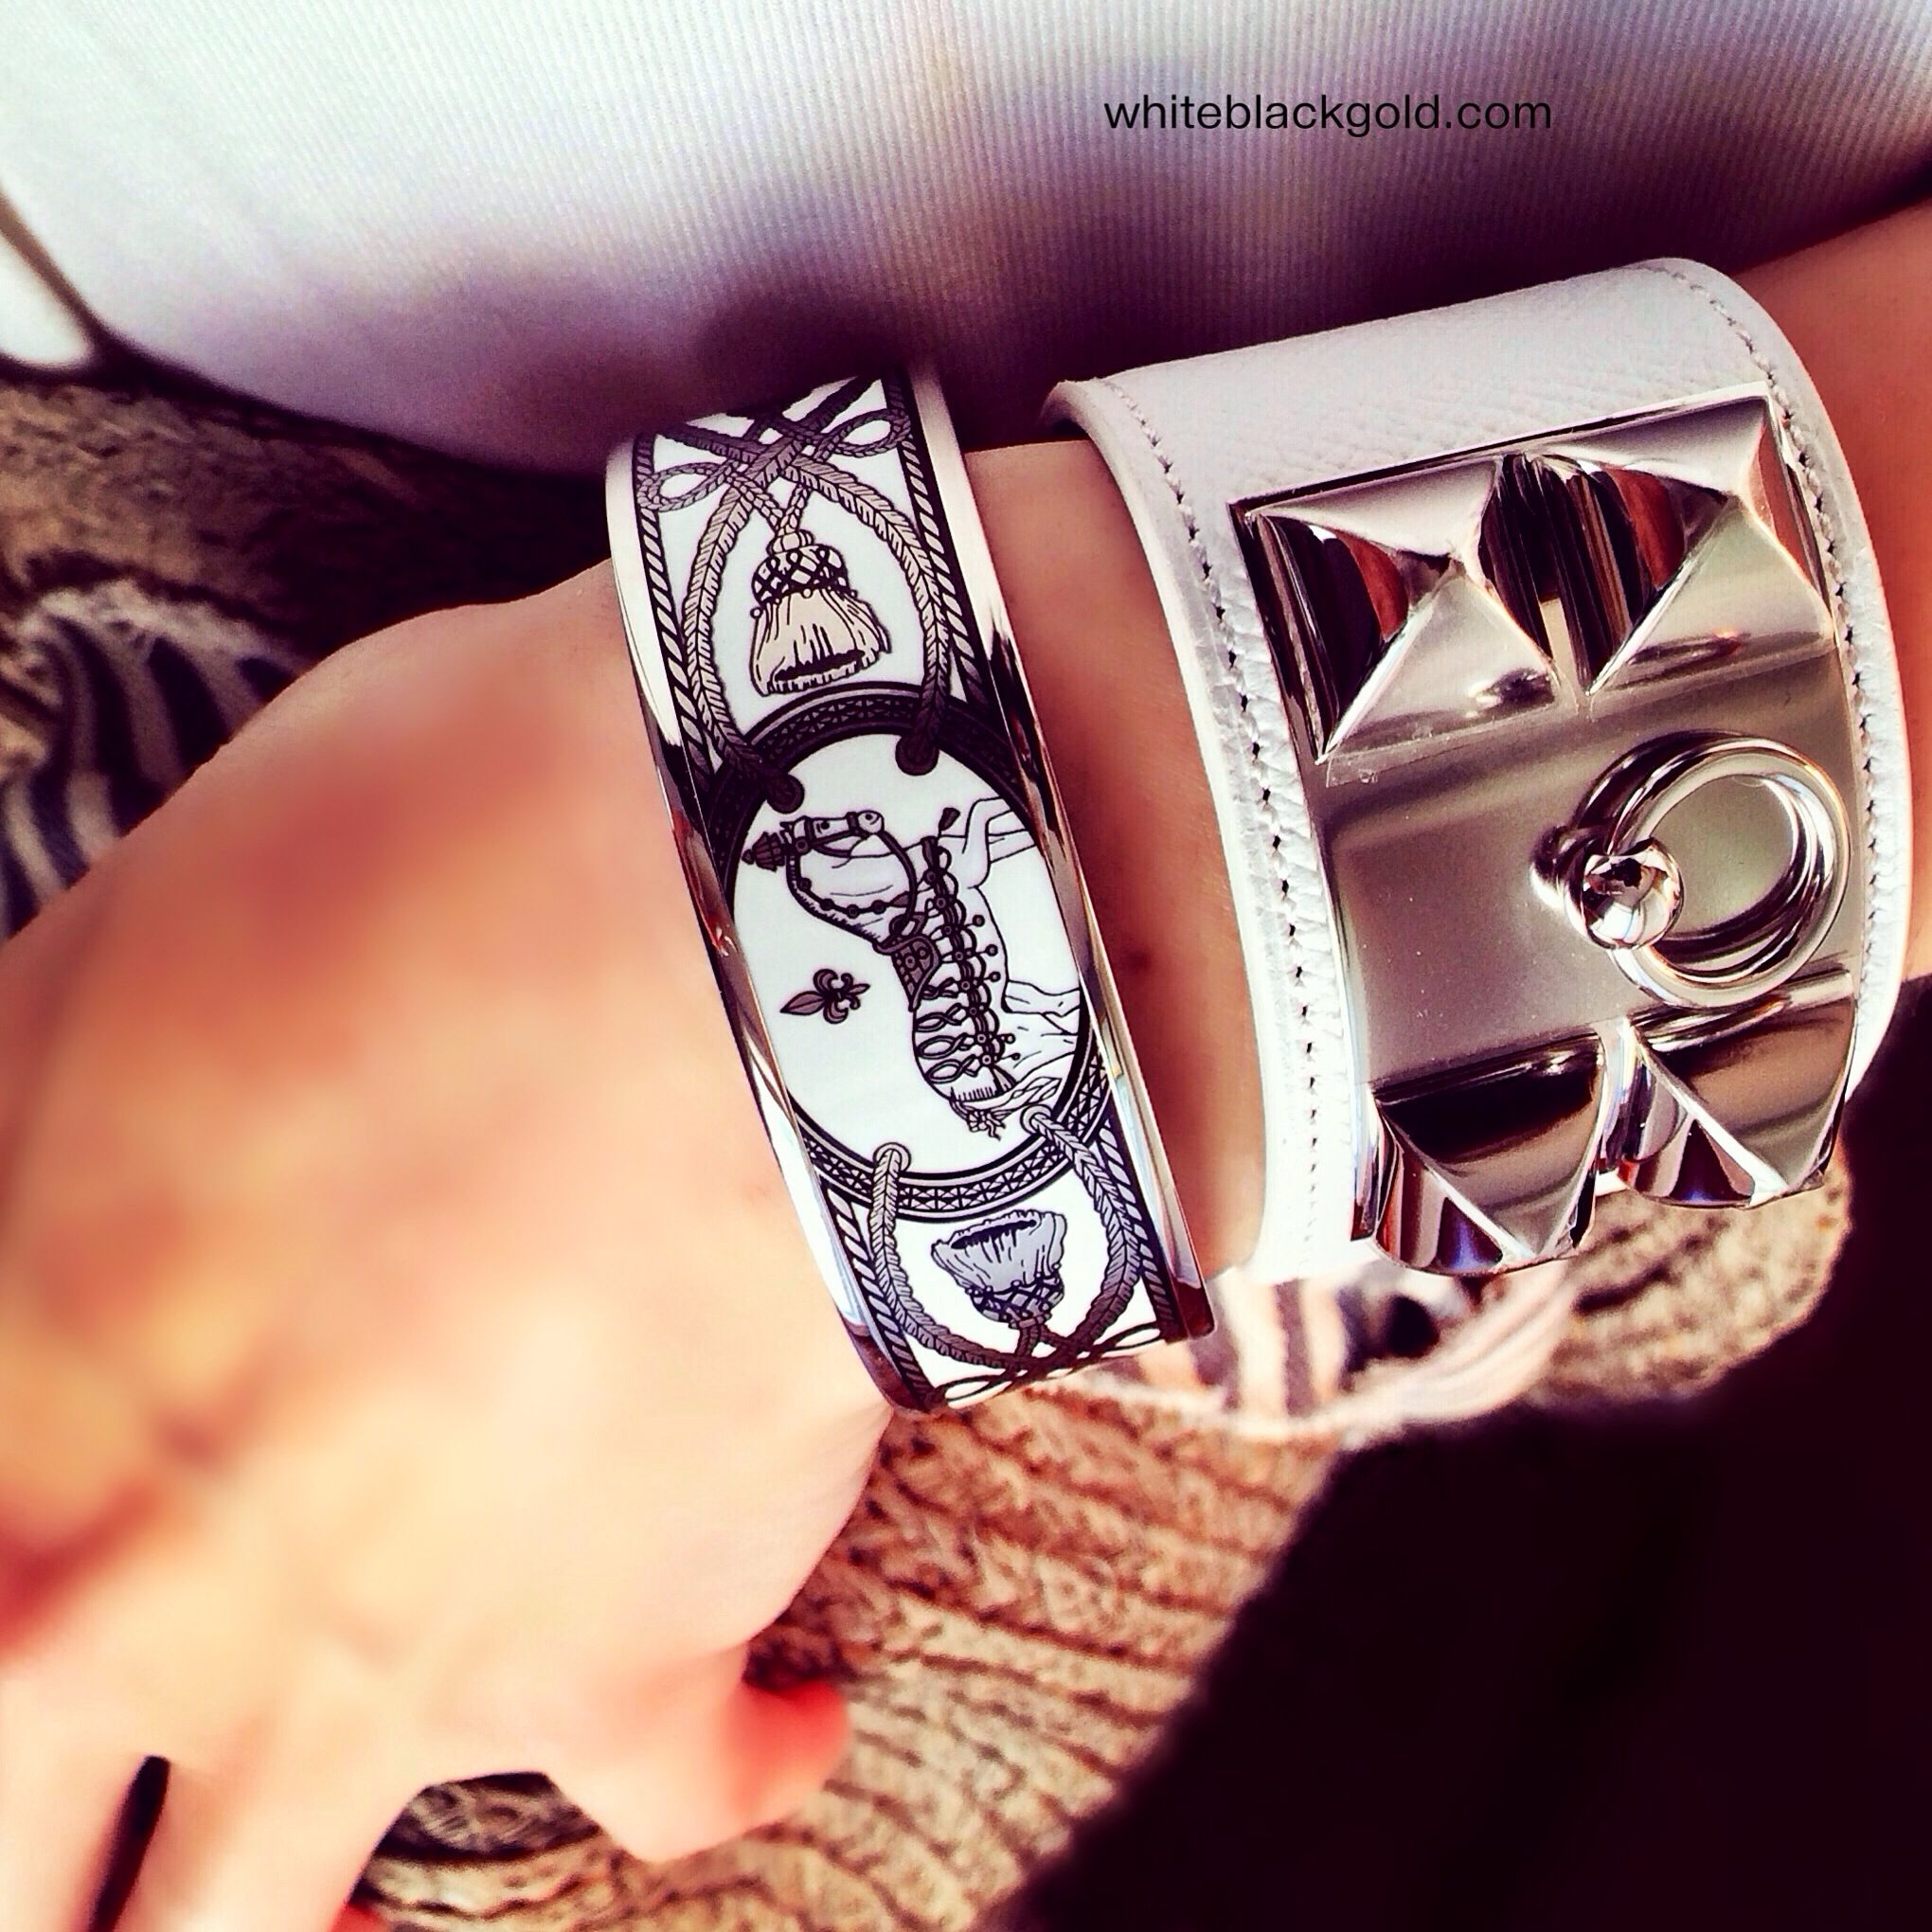 de bracelets bracelet the enlarged chien s bangle realreal collier hermes products jewelry herm